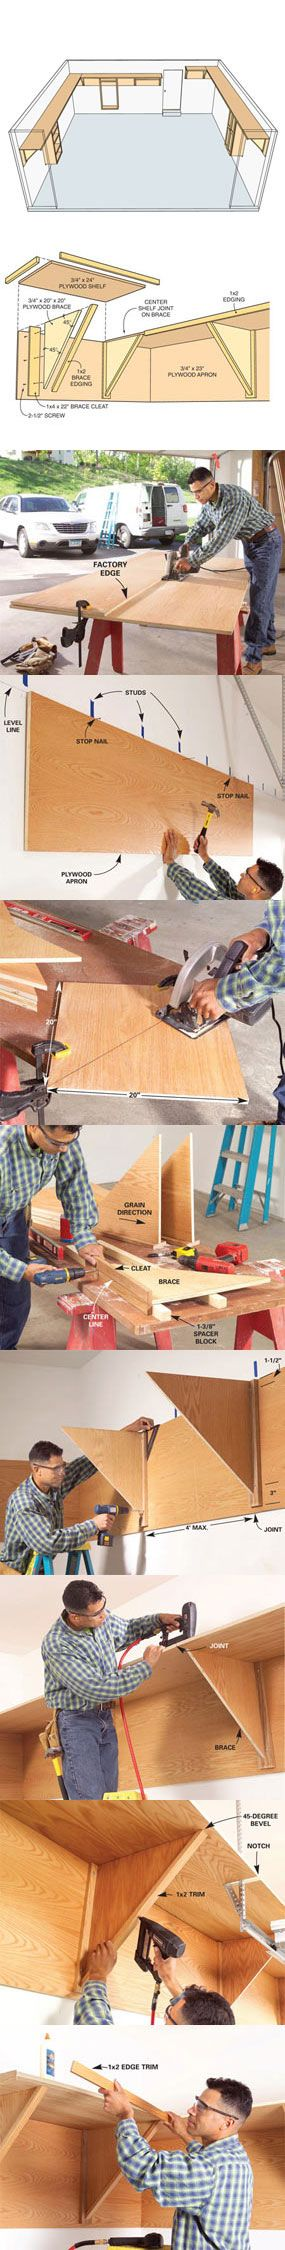 Did you know that an average garage has 150 square feet of unused space. Learn how to build a storage system that uses this unused space at http://www.familyhandyman.com/DIY-Projects/Home-Organization/Garage-Storage/garage-storage-ideas-find-unused-space/View-All